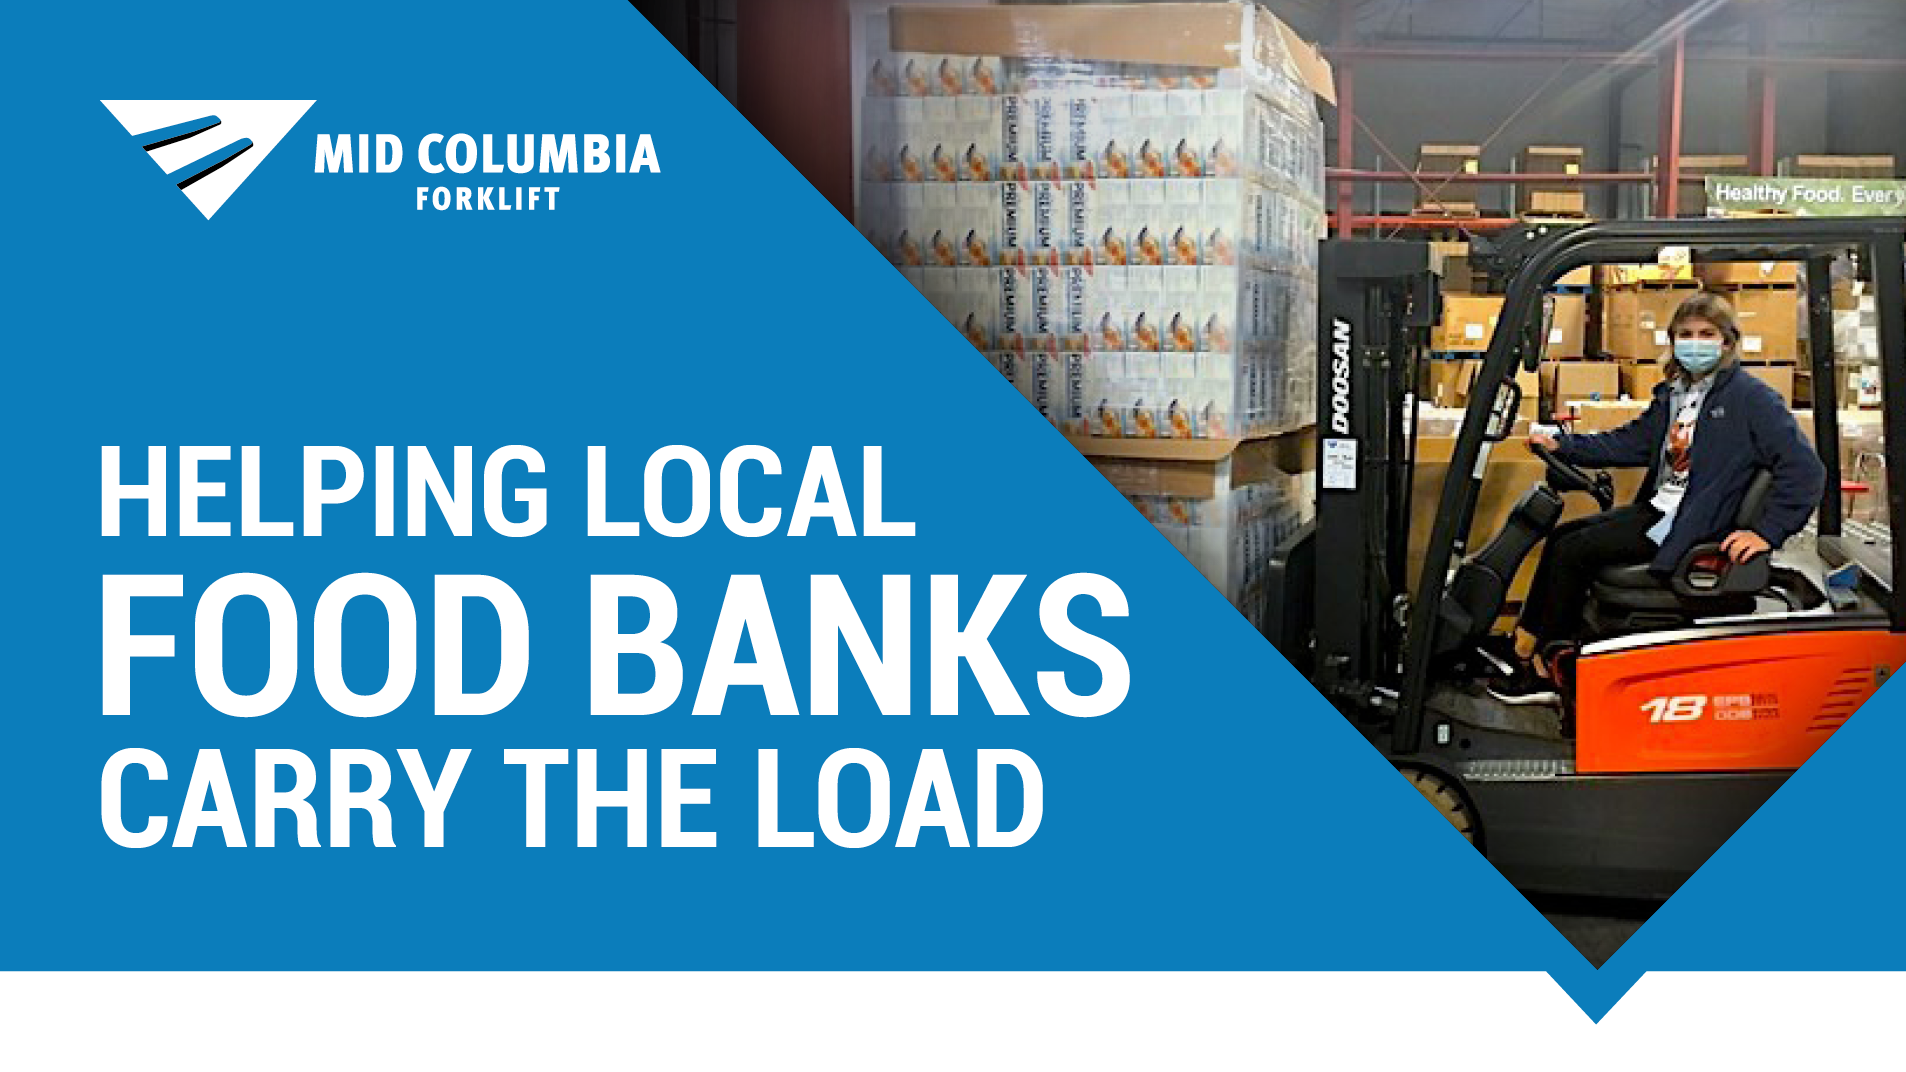 Helping Local Food Banks Carry the Load